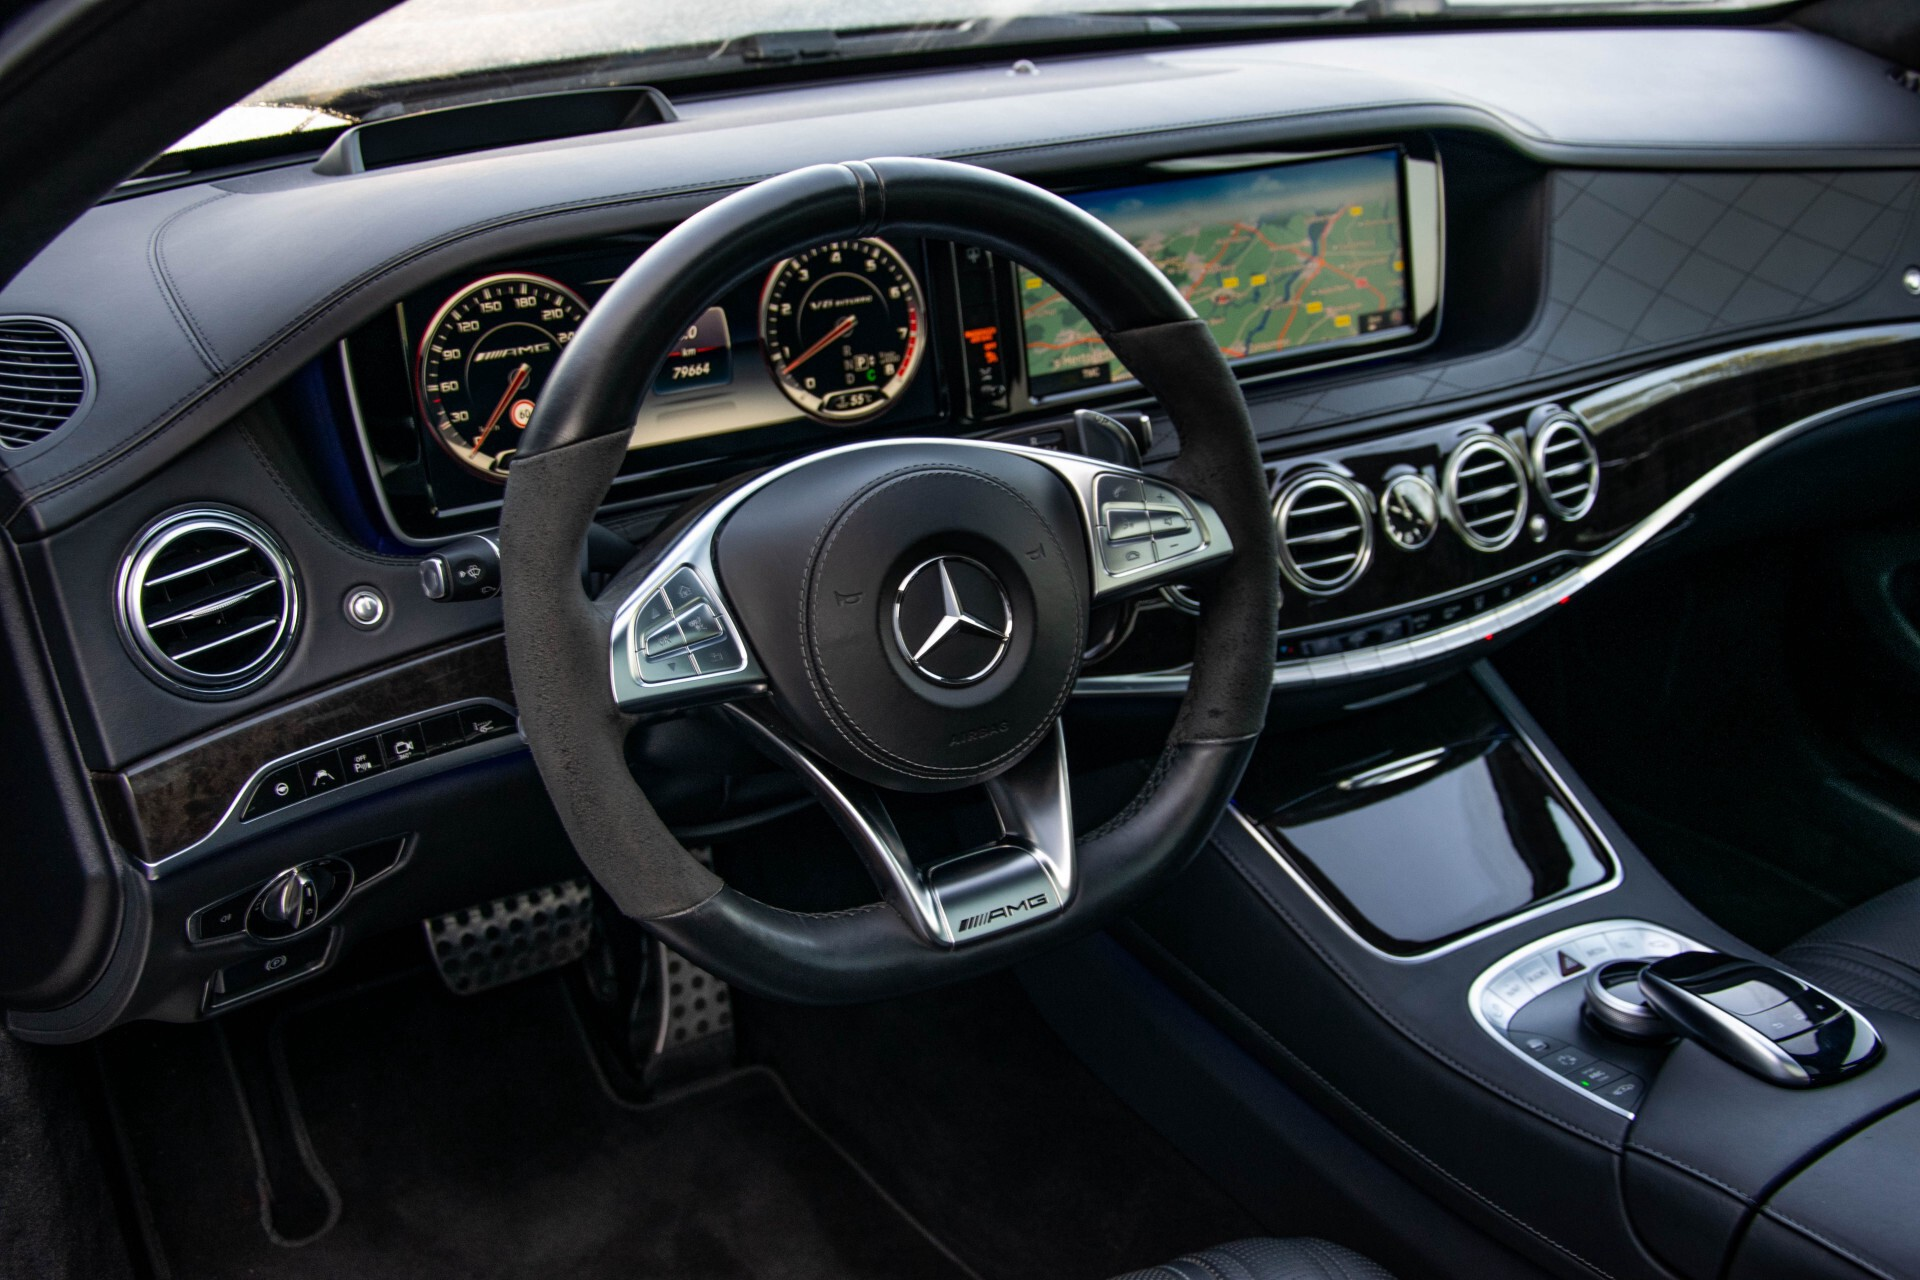 Mercedes-Benz S-Klasse 63 AMG Exclusive/Burmester High-End/Driverspack Aut7 Foto 16